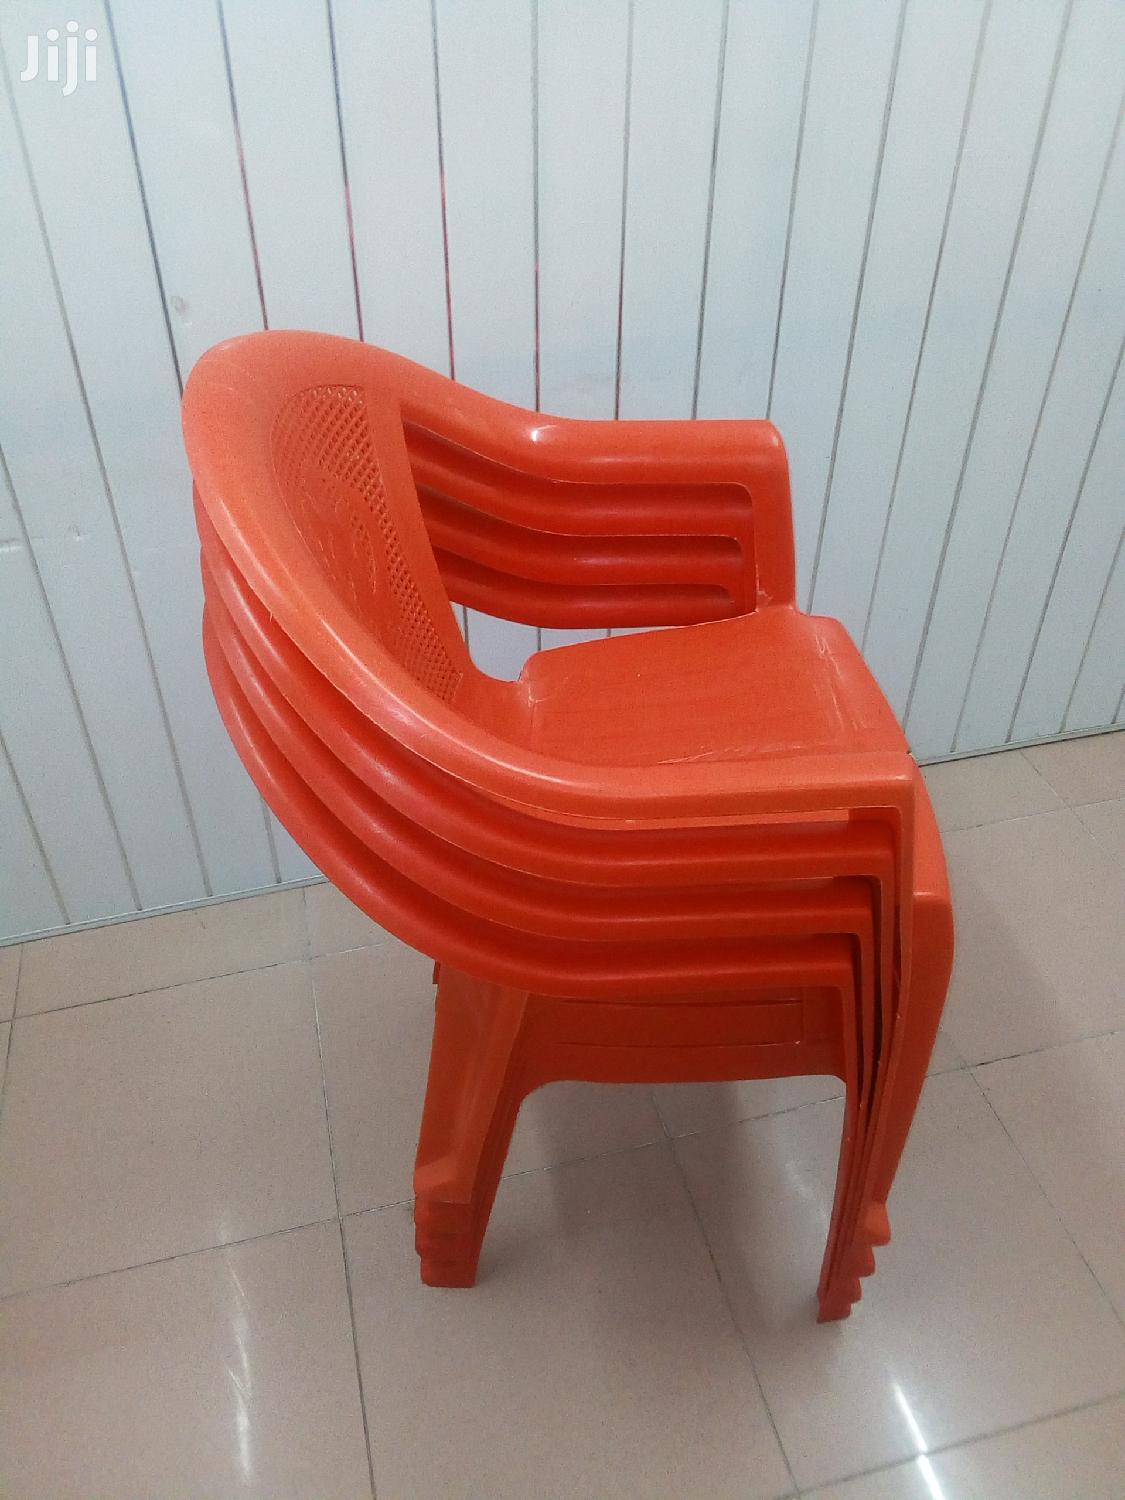 Plastic Chairs | Furniture for sale in Korle Gonno, Greater Accra, Ghana